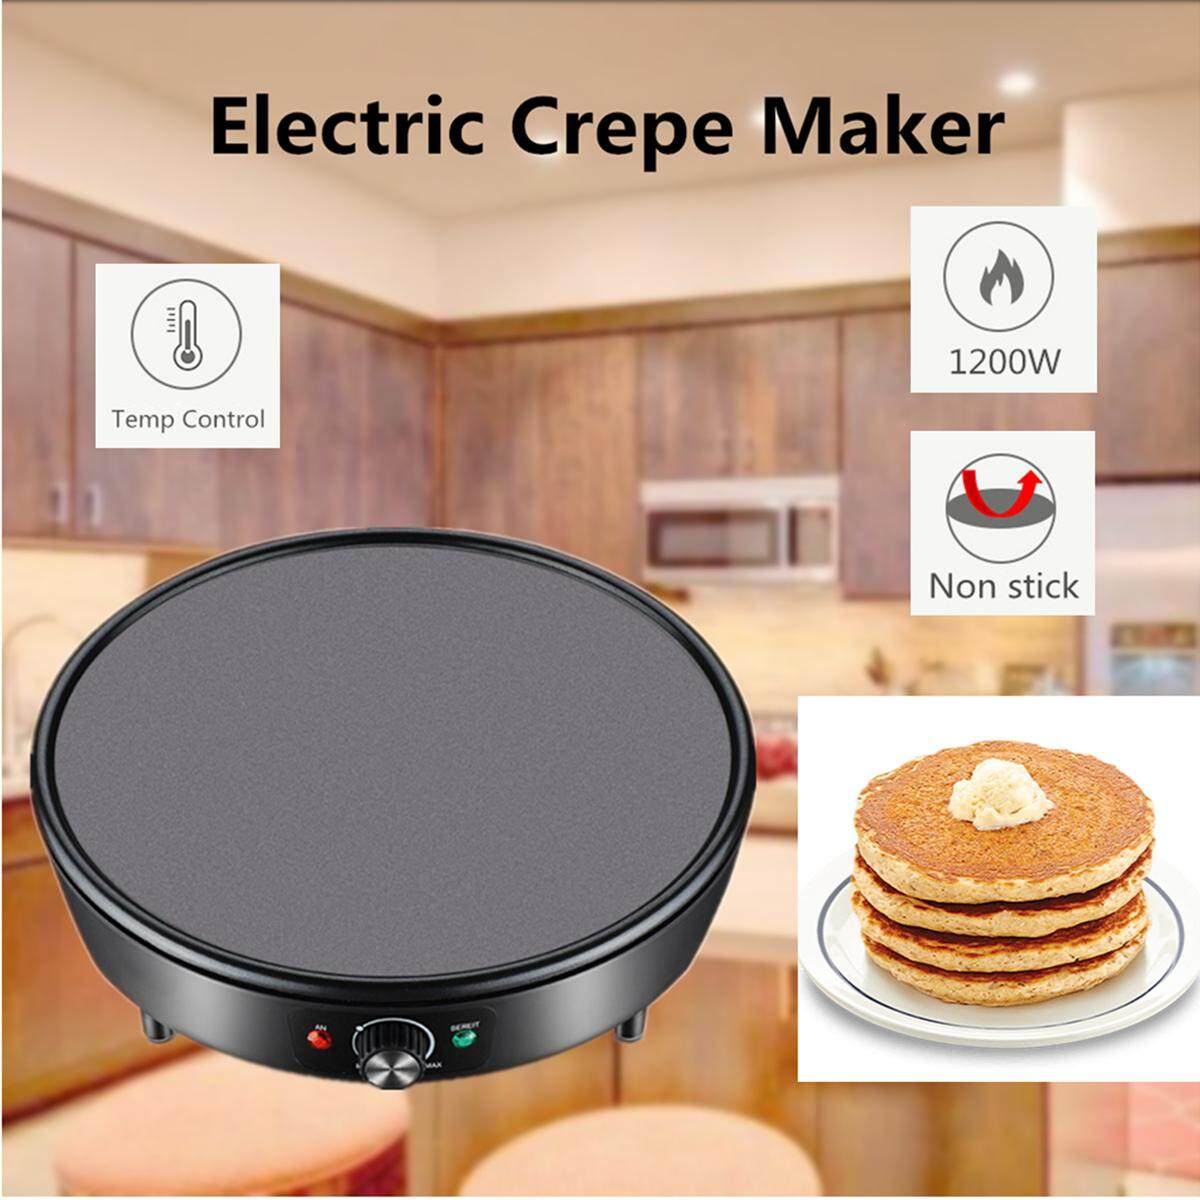 Electric Kitchen Crepe Maker Baking Grill Cooktop Nonstick Pancake Eggs Bread Breakfast Crepe Maker Pancake Cooker Grill Hot Plate Dessert Making Machine By Audew.